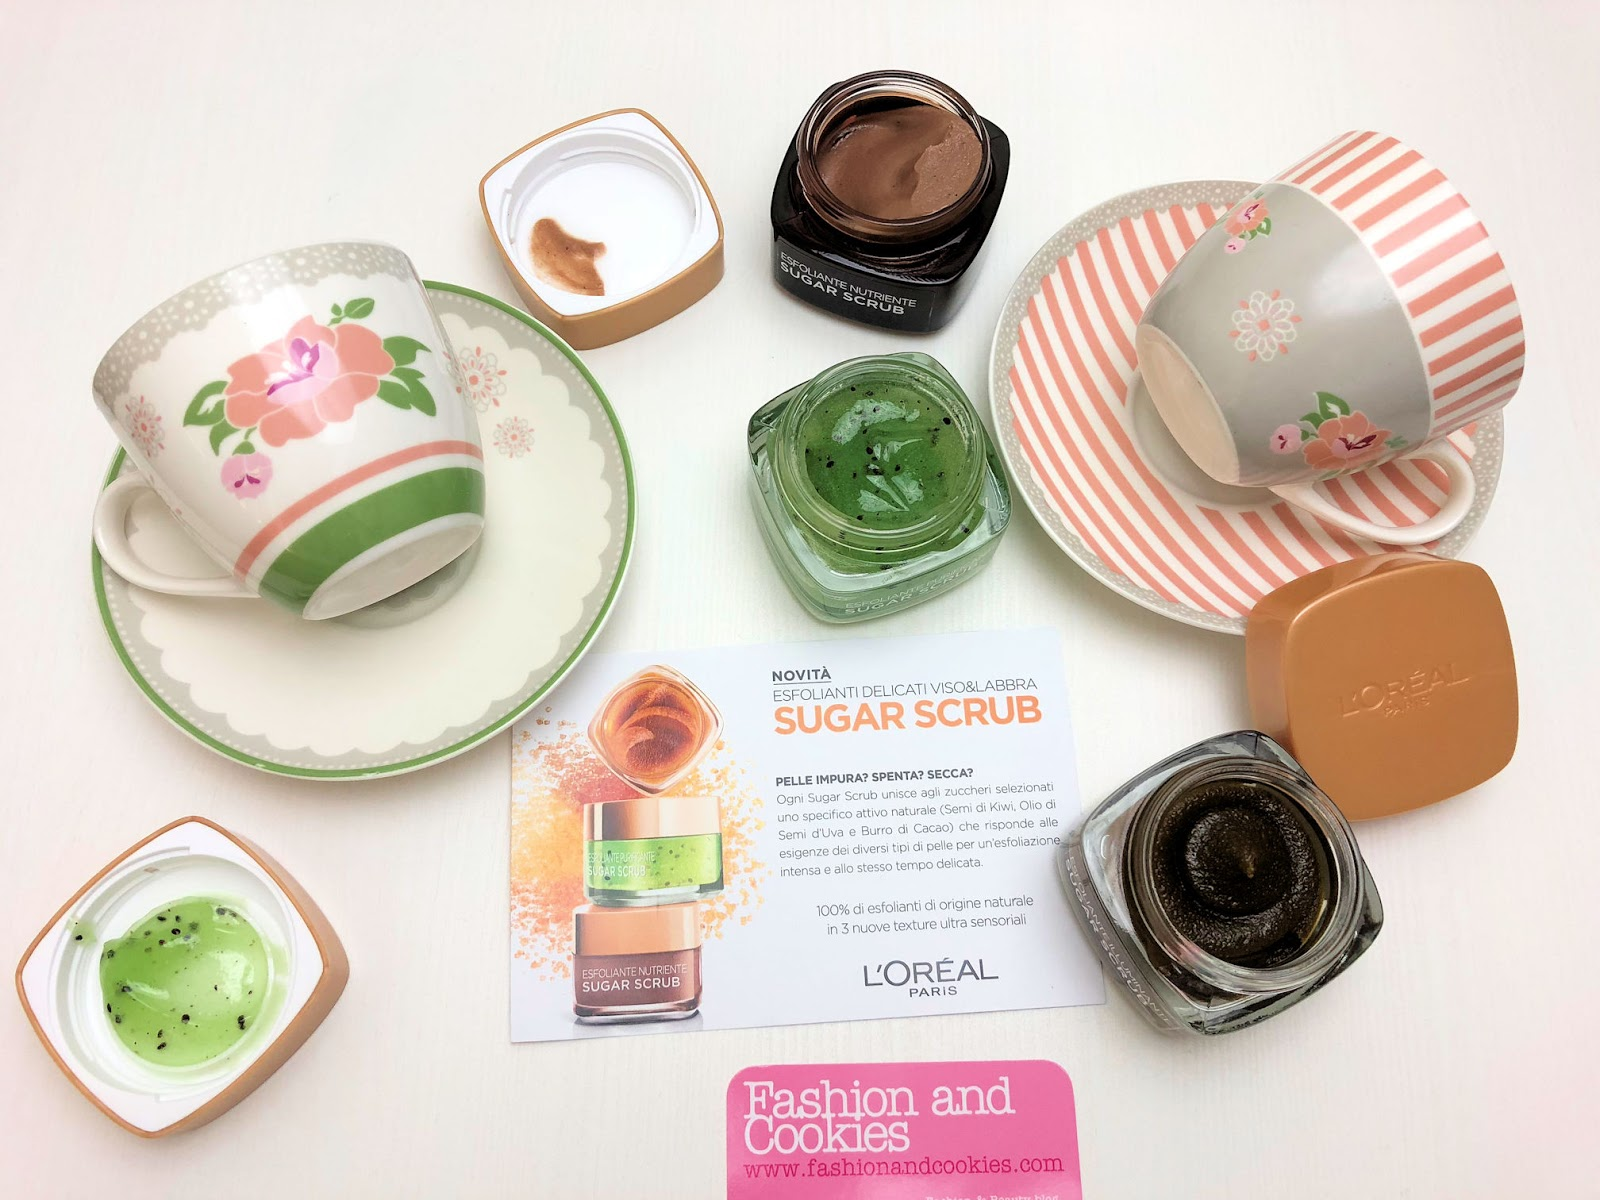 Pelle super morbida con esfoliante Sugar Scrub di L'Oréal su Fashion and Cookies beauty blog, beauty blogger